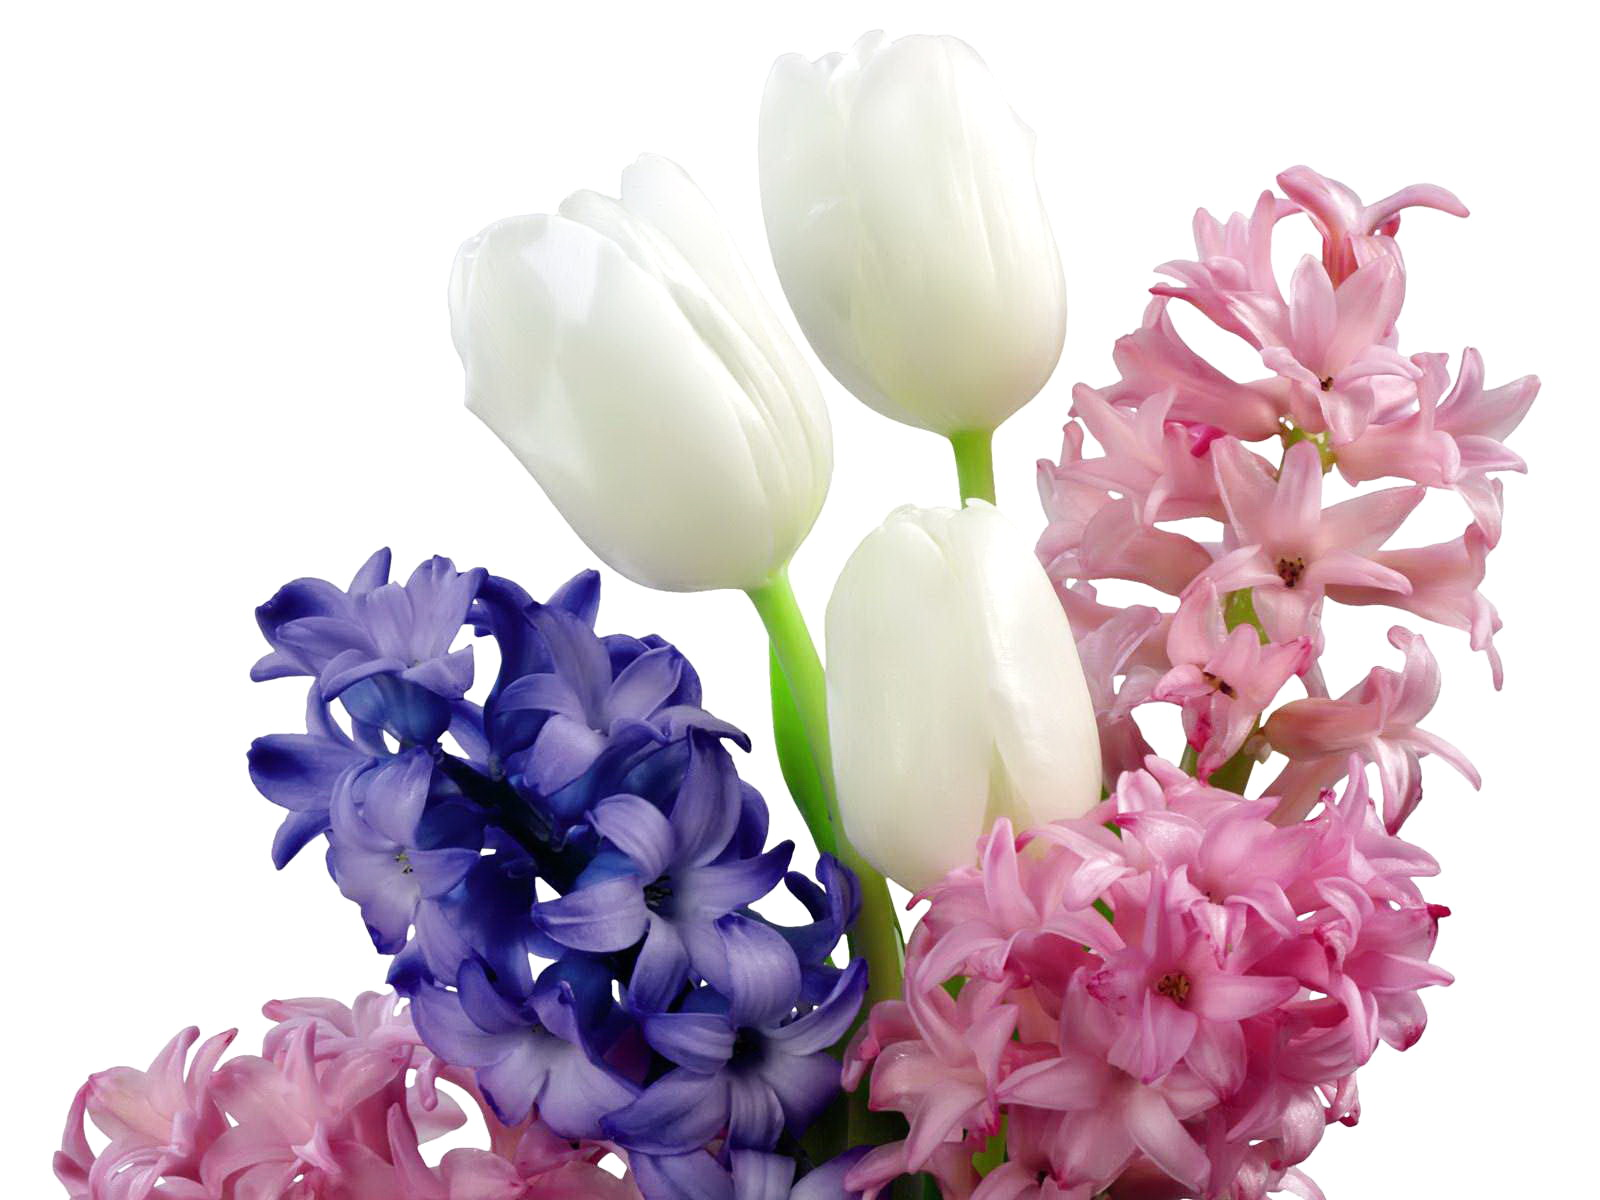 Blue And Pink Hyacinth Flowers Wallpaper | All Flowers | Send Flowers Wallpaper